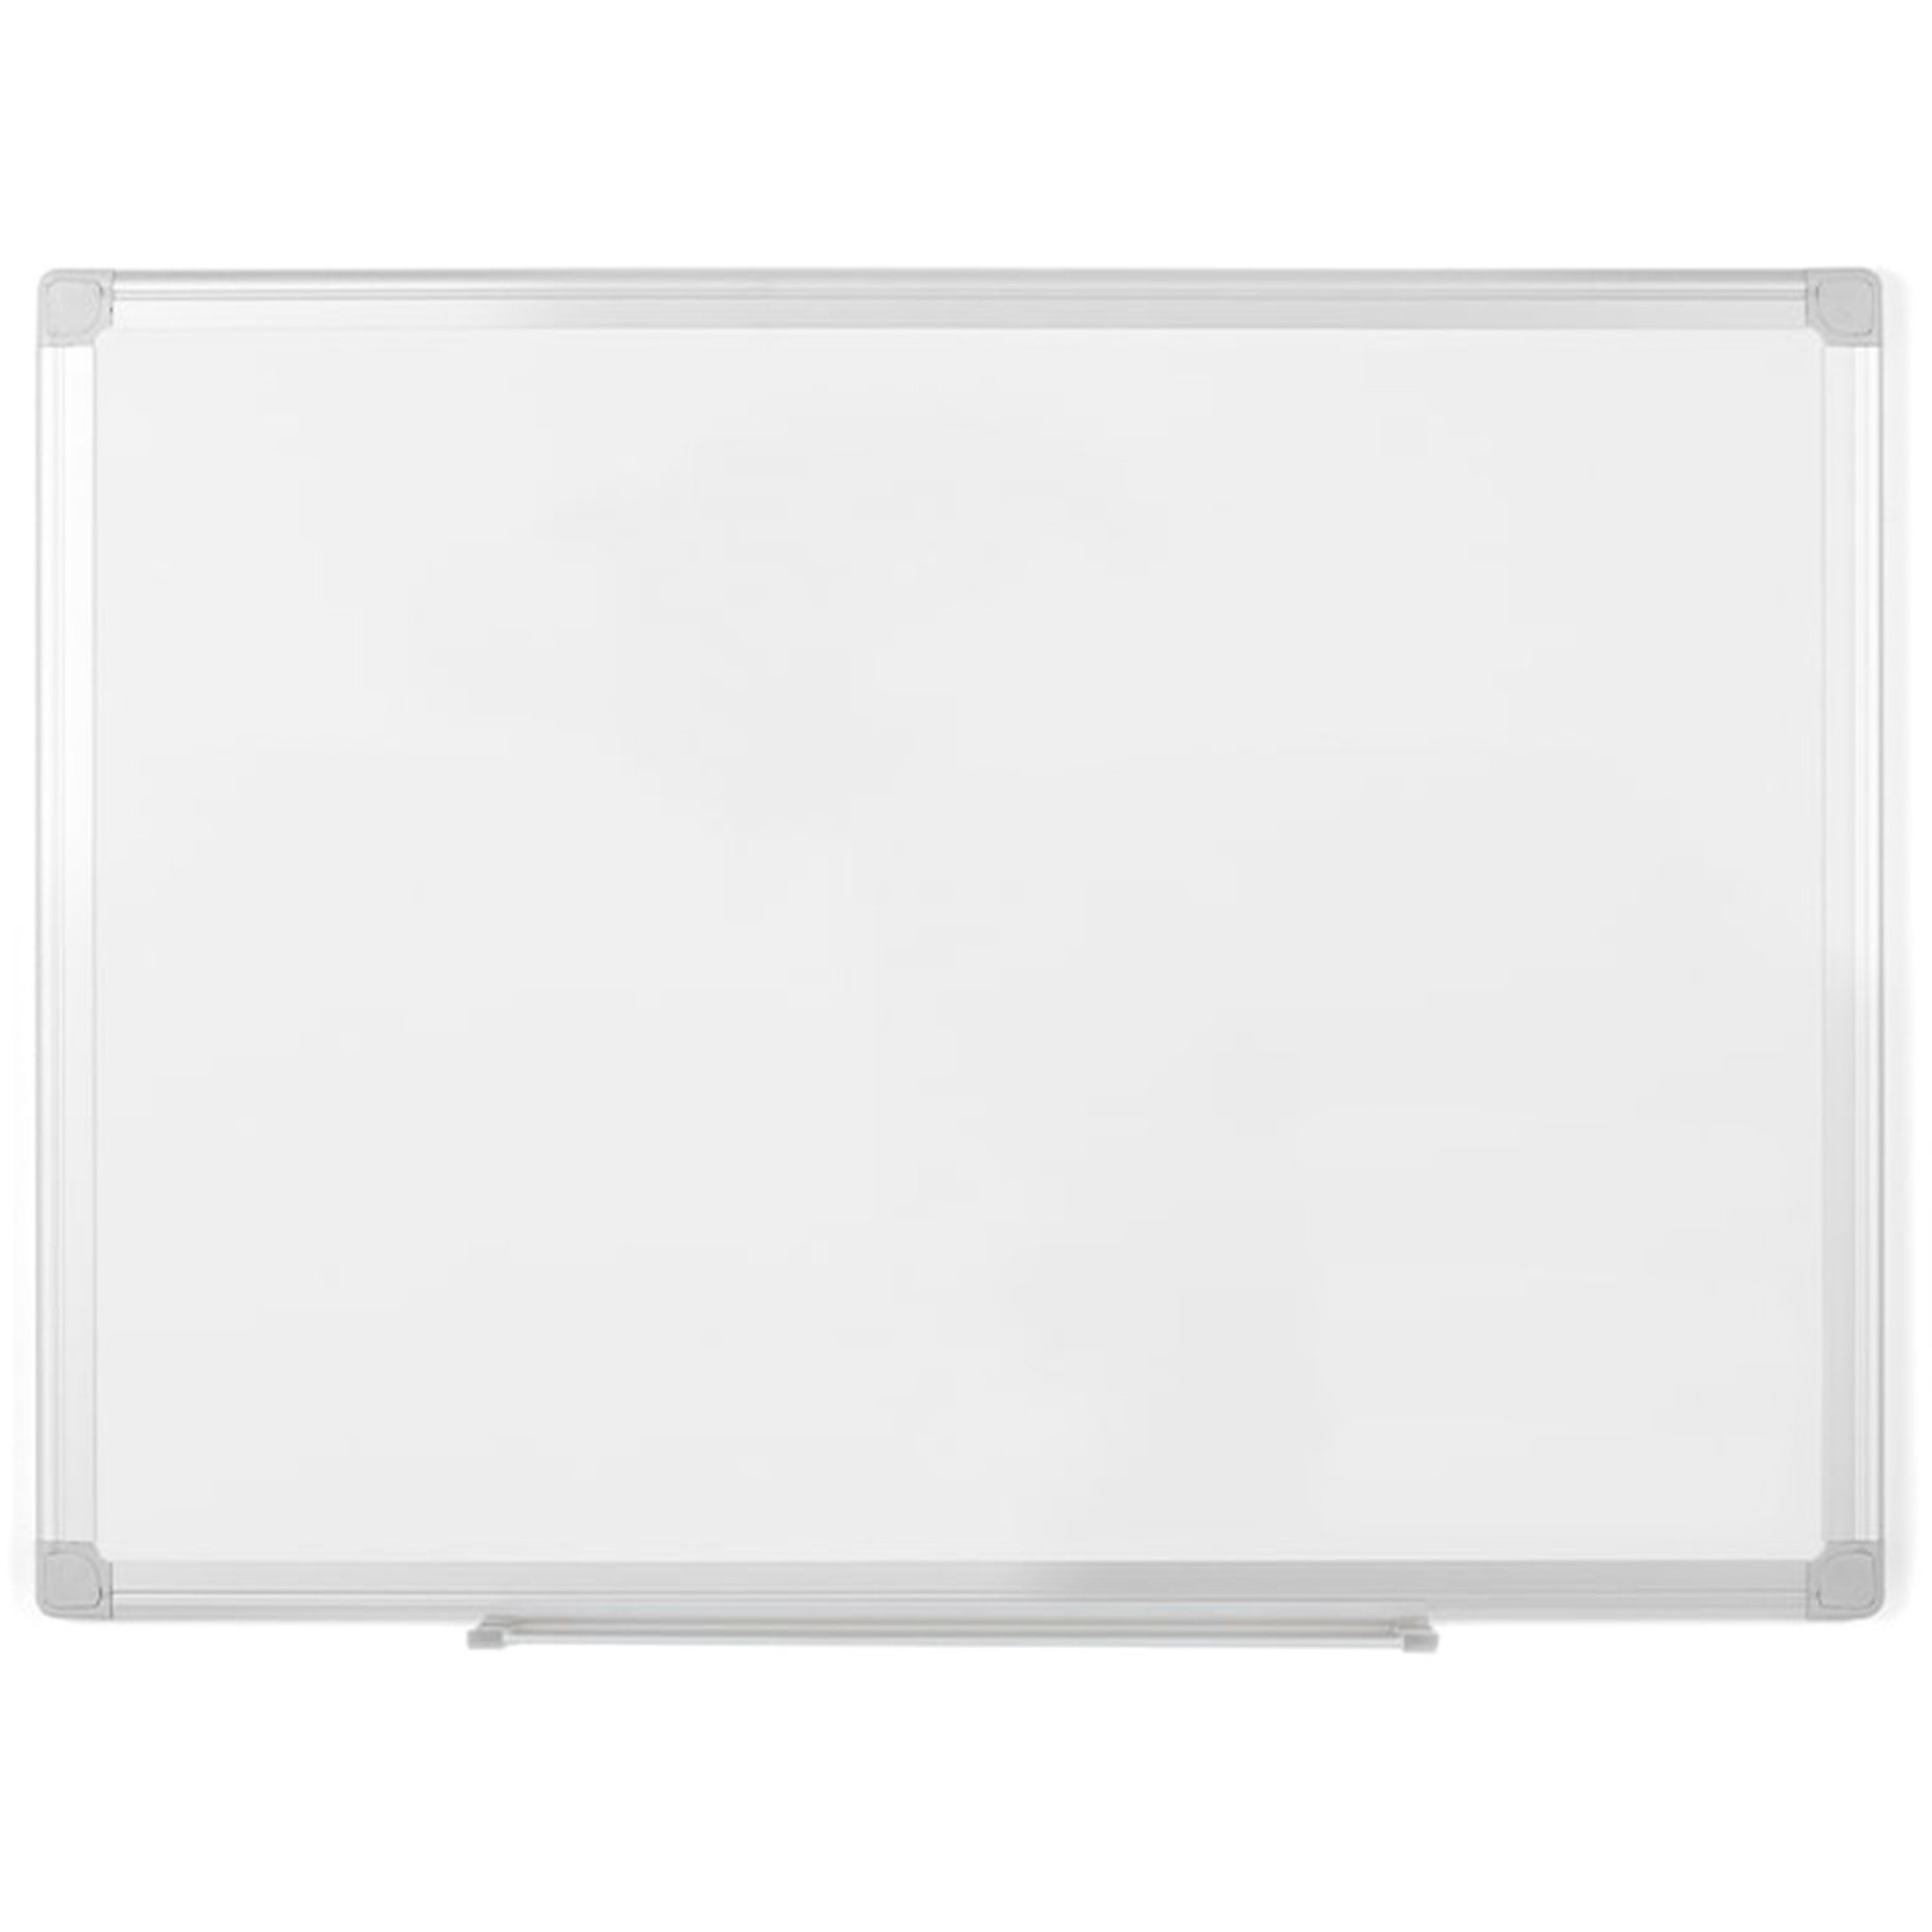 Bi-silque S.a Mastervision Easyclean Dry-erase Board - 72 (6 Ft) Width X 48 (4 Ft) Height - Aluminum Frame - Rectangle - 1 Each